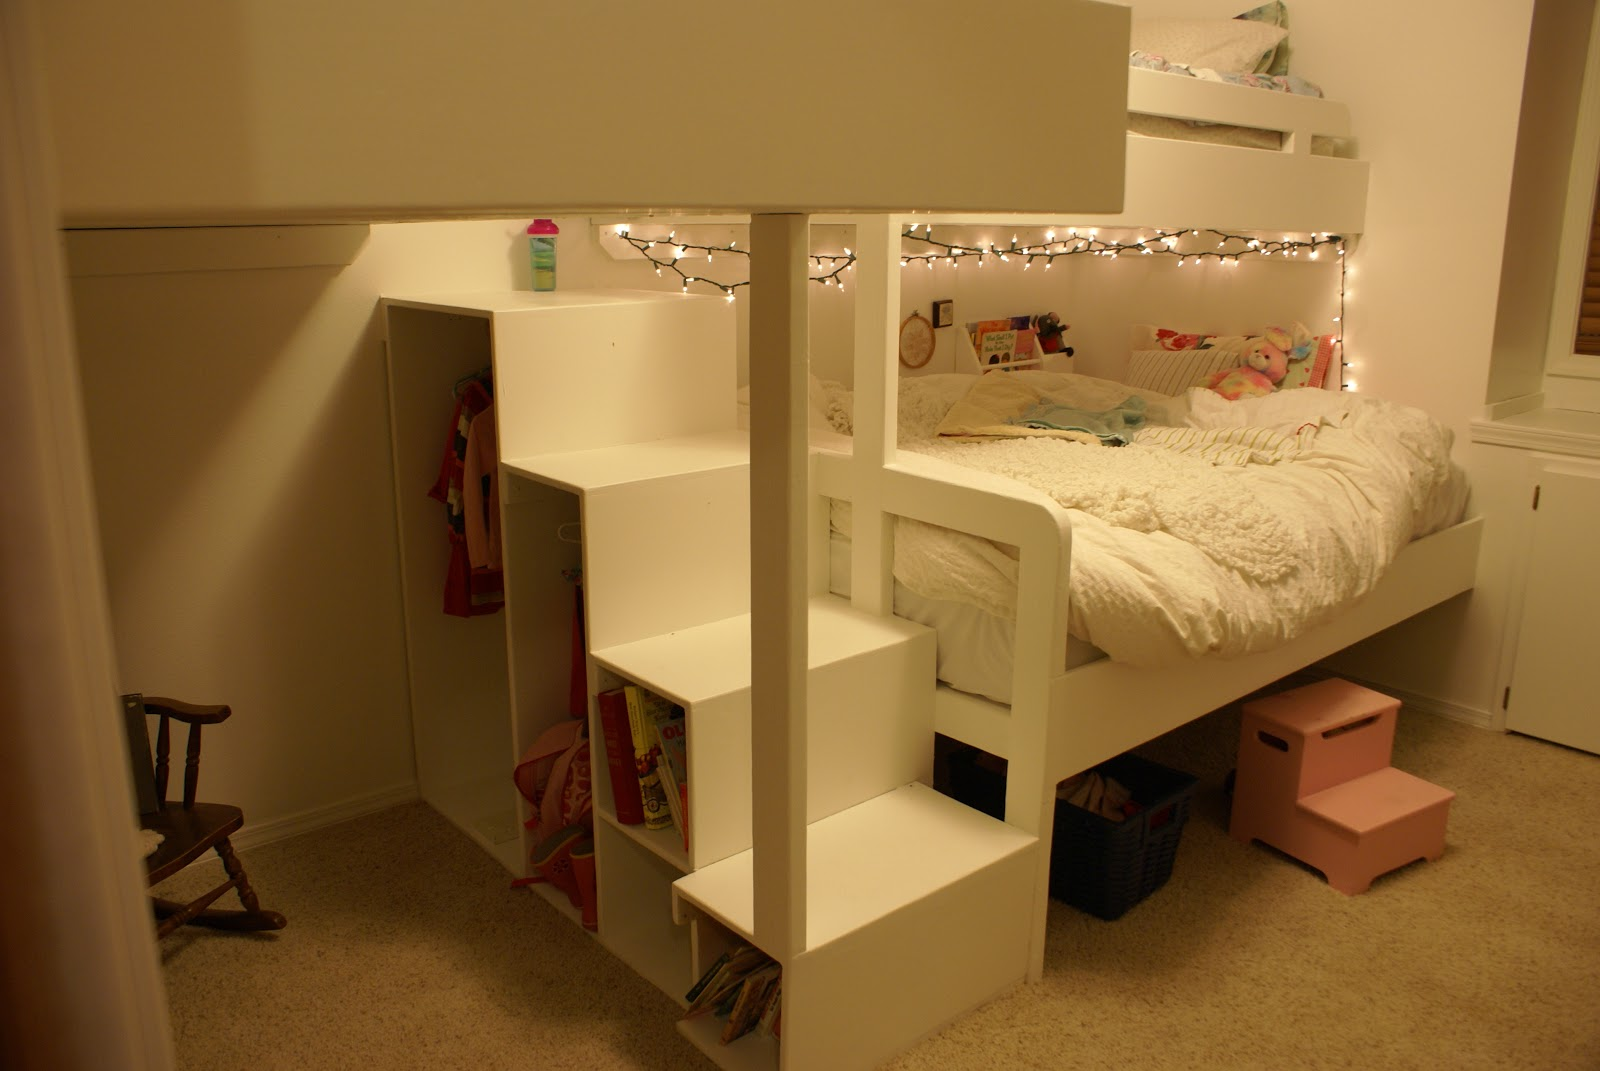 Bunk Bed For 3 Year Old Home Garden Improvement Design Collaboration